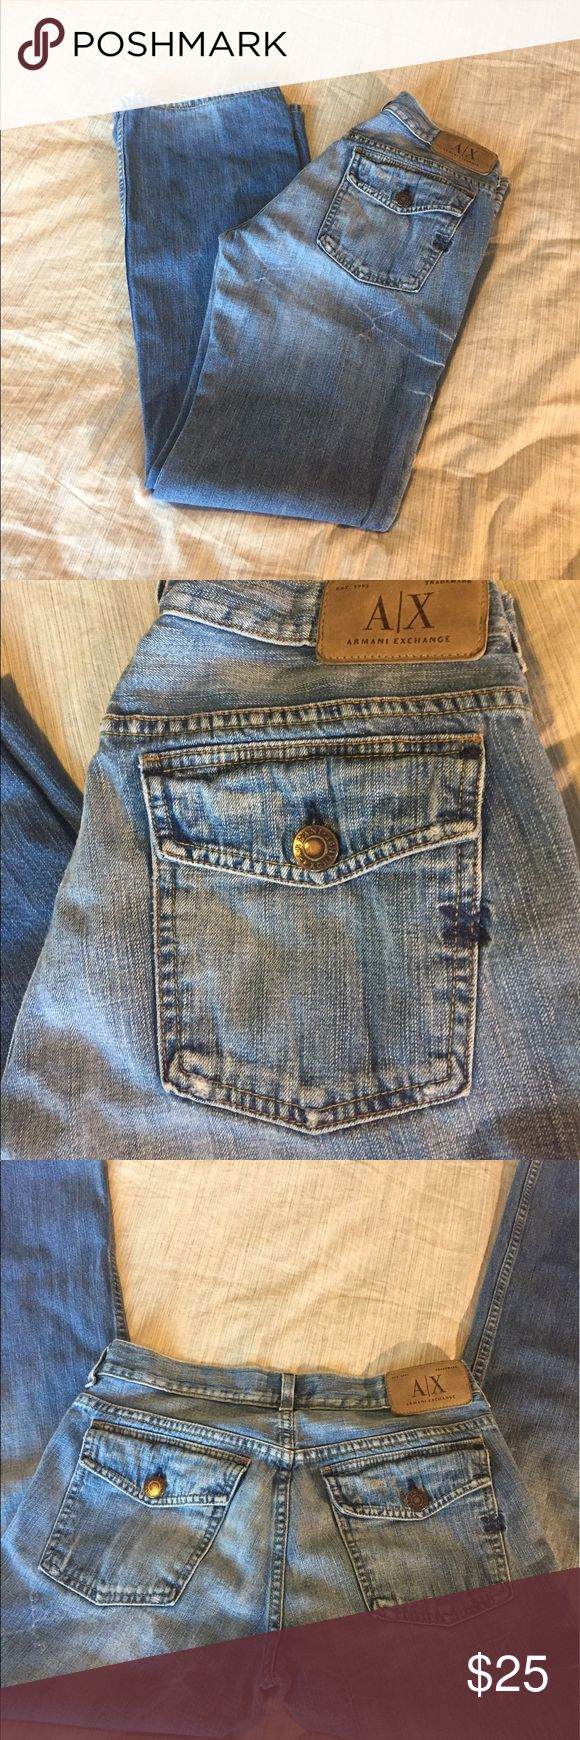 "Armani Exchange Jeans 👖 Soft and comfy with distressed look. Some wear at bottom of leg. 30"" inseam. Armani Exchange Jeans"